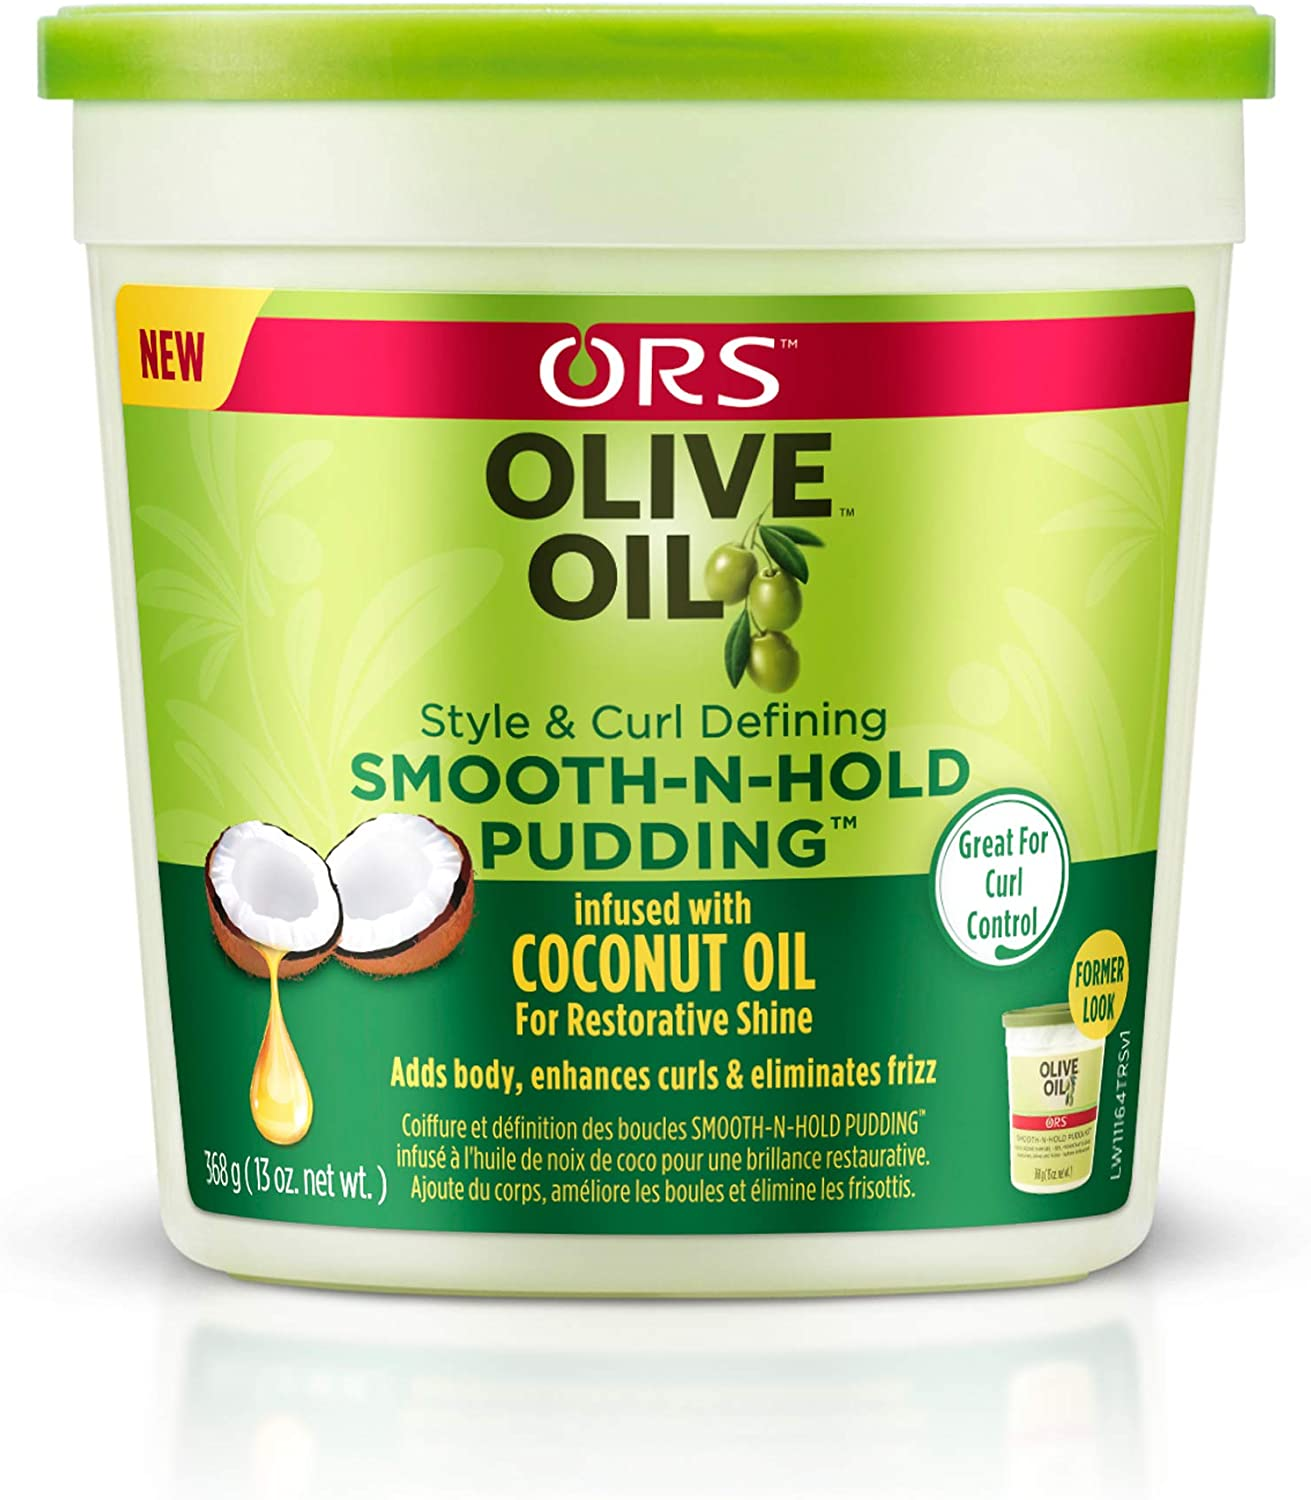 Organic Root (ORS) Ors Oliva Smooth Pudding 13 Ounce Tub (384ml) (3 Pack)